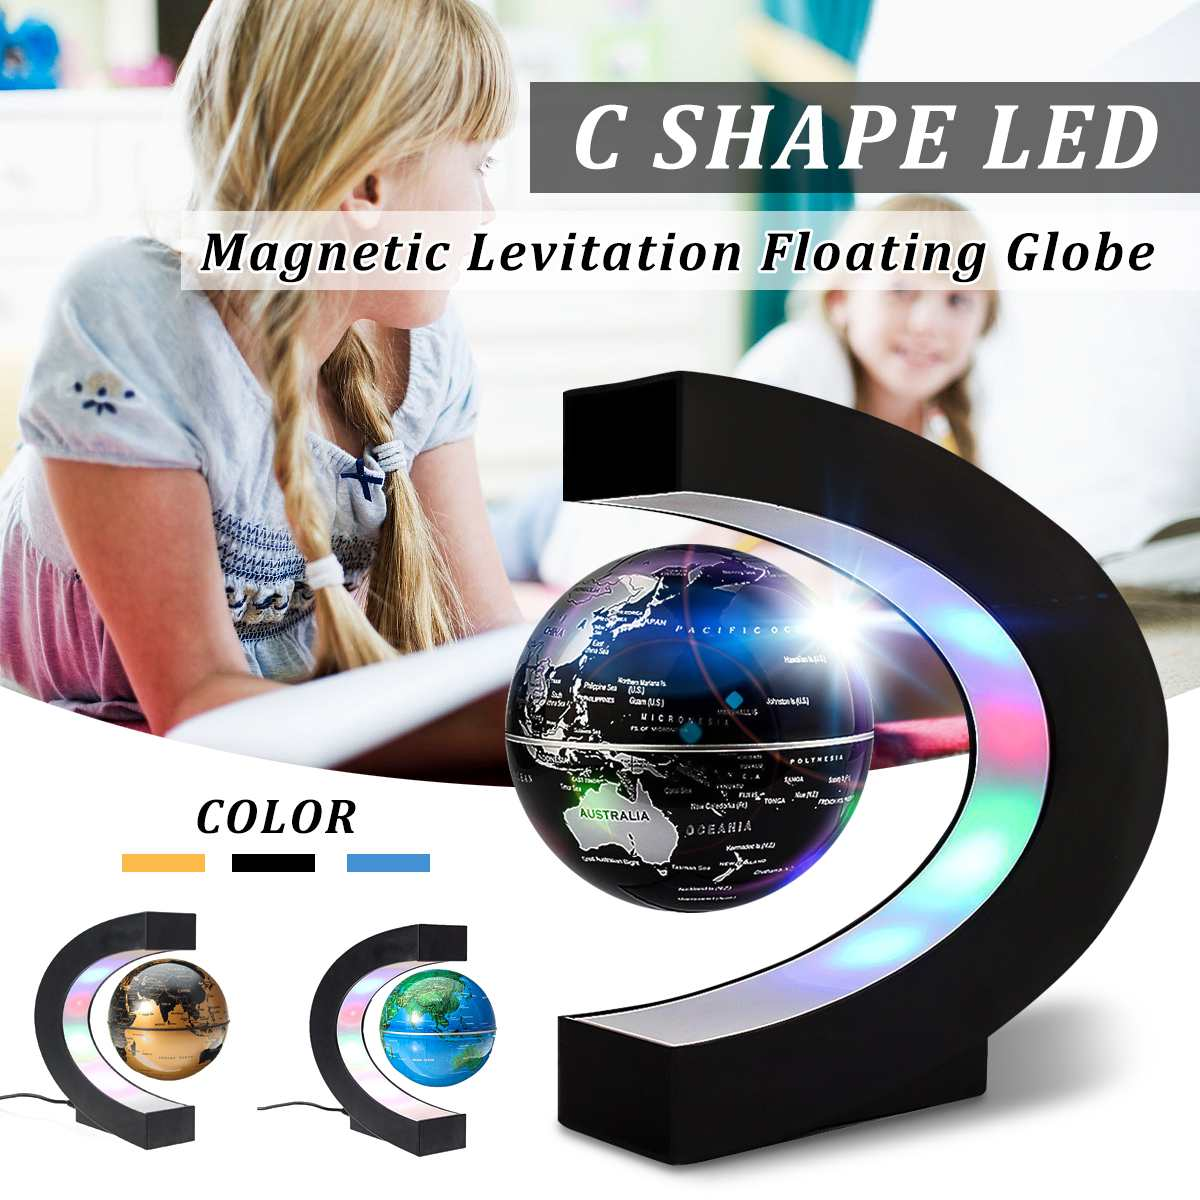 Magnetic Levitation Globe Floating World Map C Shape LED Light Terrestrial Children Learning Geography School Home Office Decor